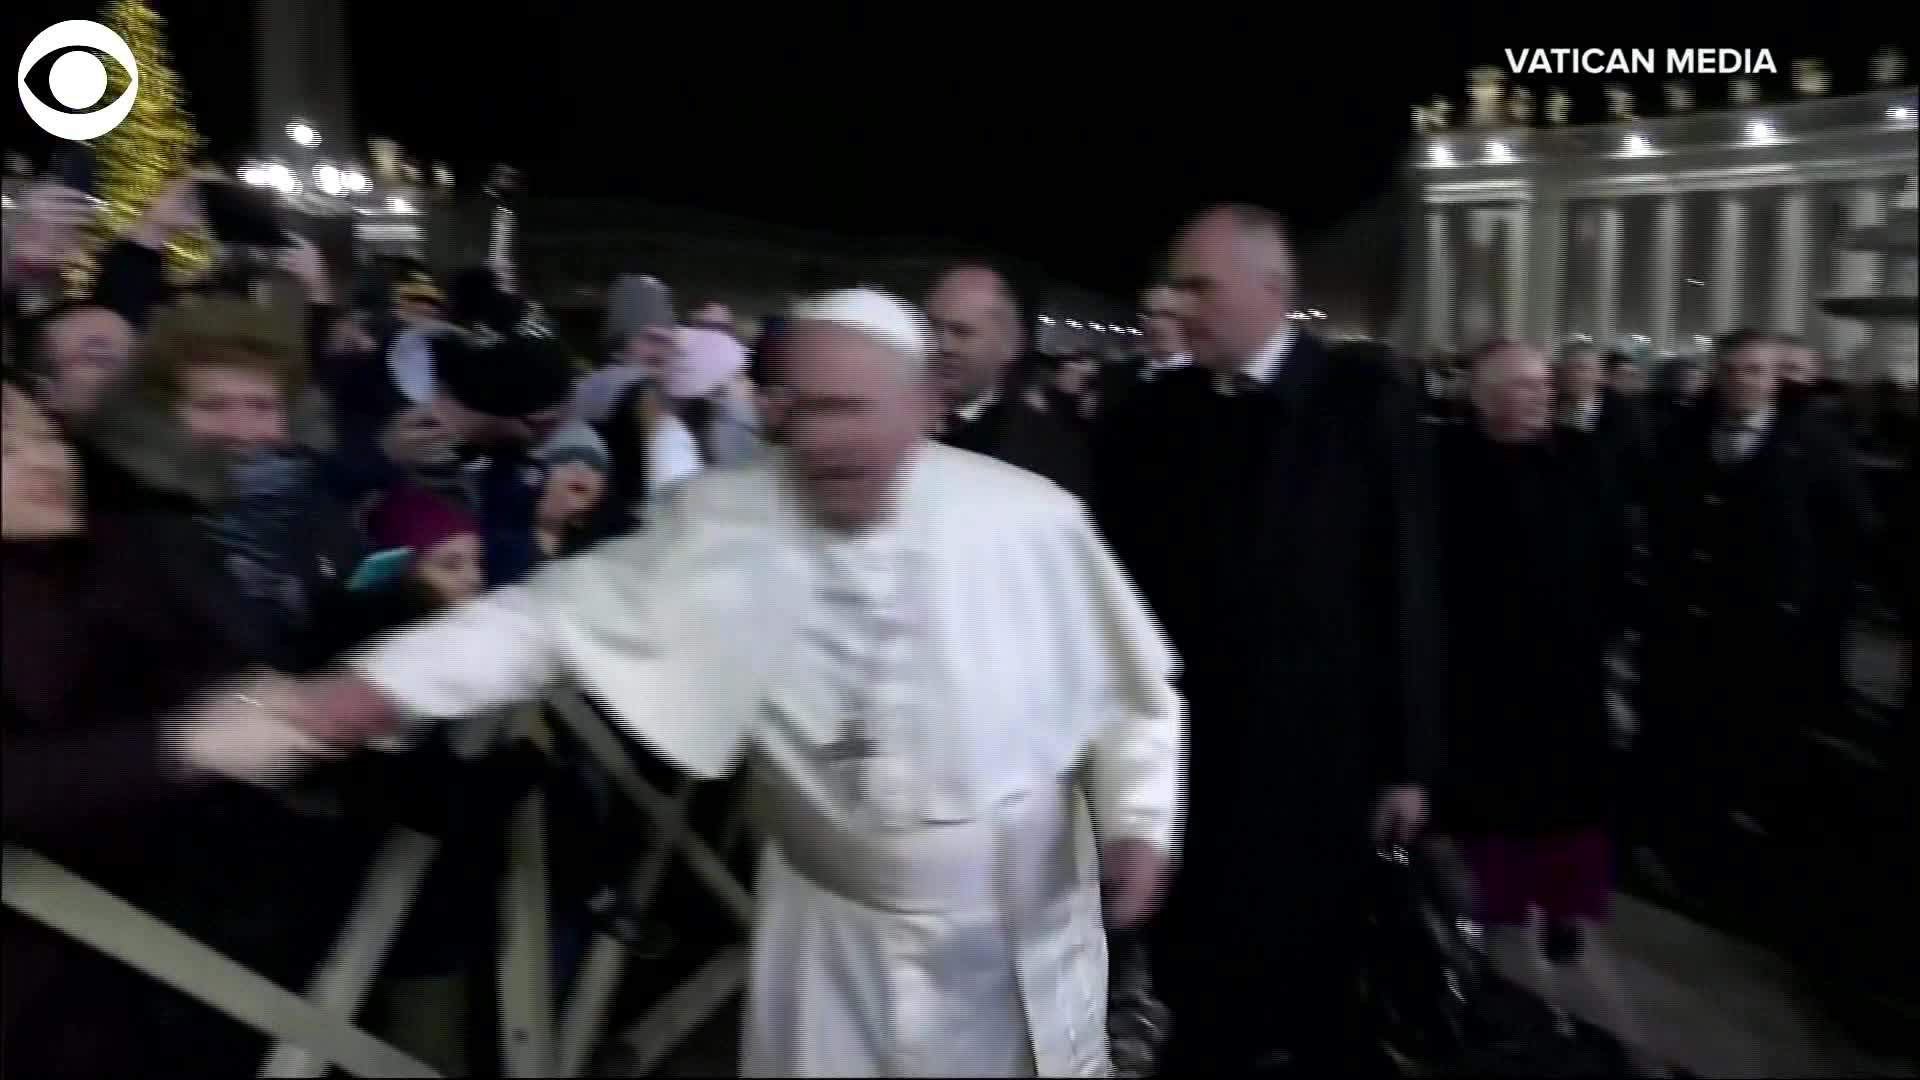 WEB EXTRA: Pope Pulls Away From Woman Who Grabbed And Pulled His Hand